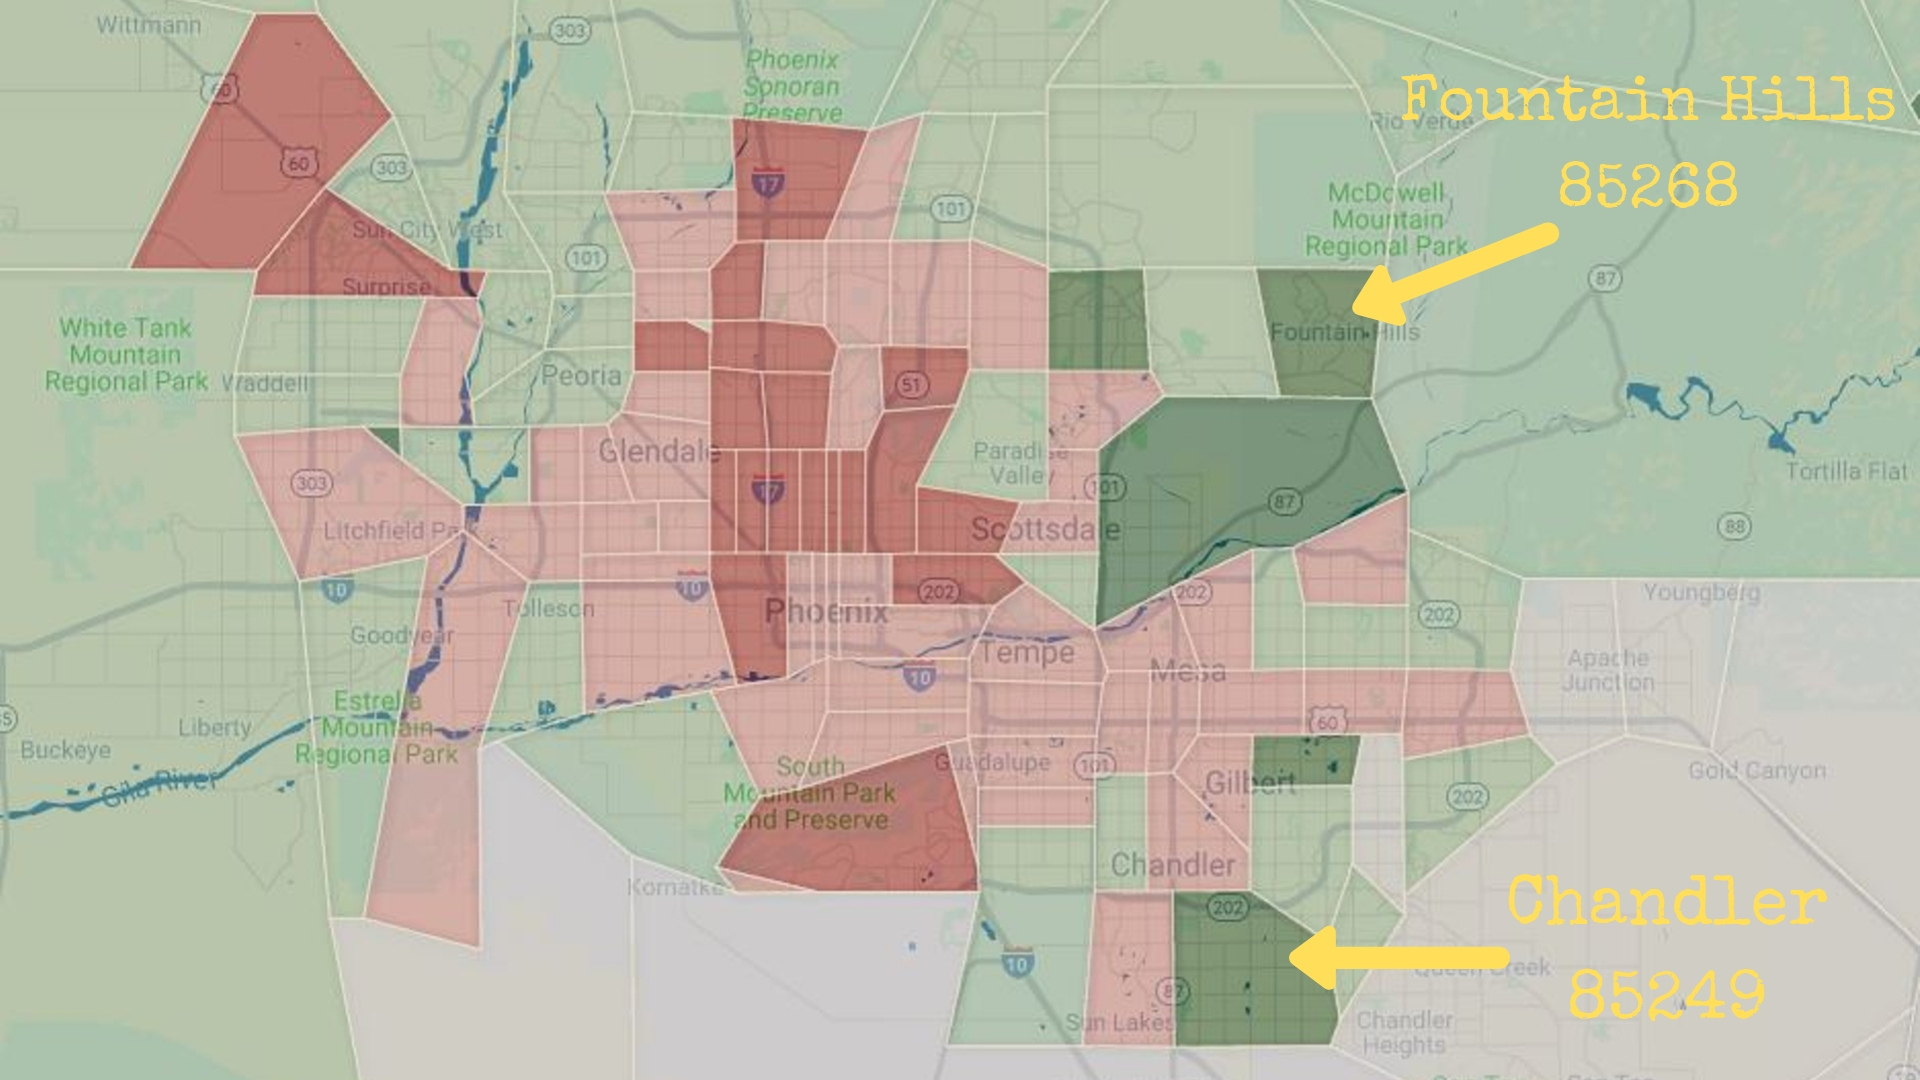 Fountain Hills Ties as Safest Zip Code in Phoenix | The ...